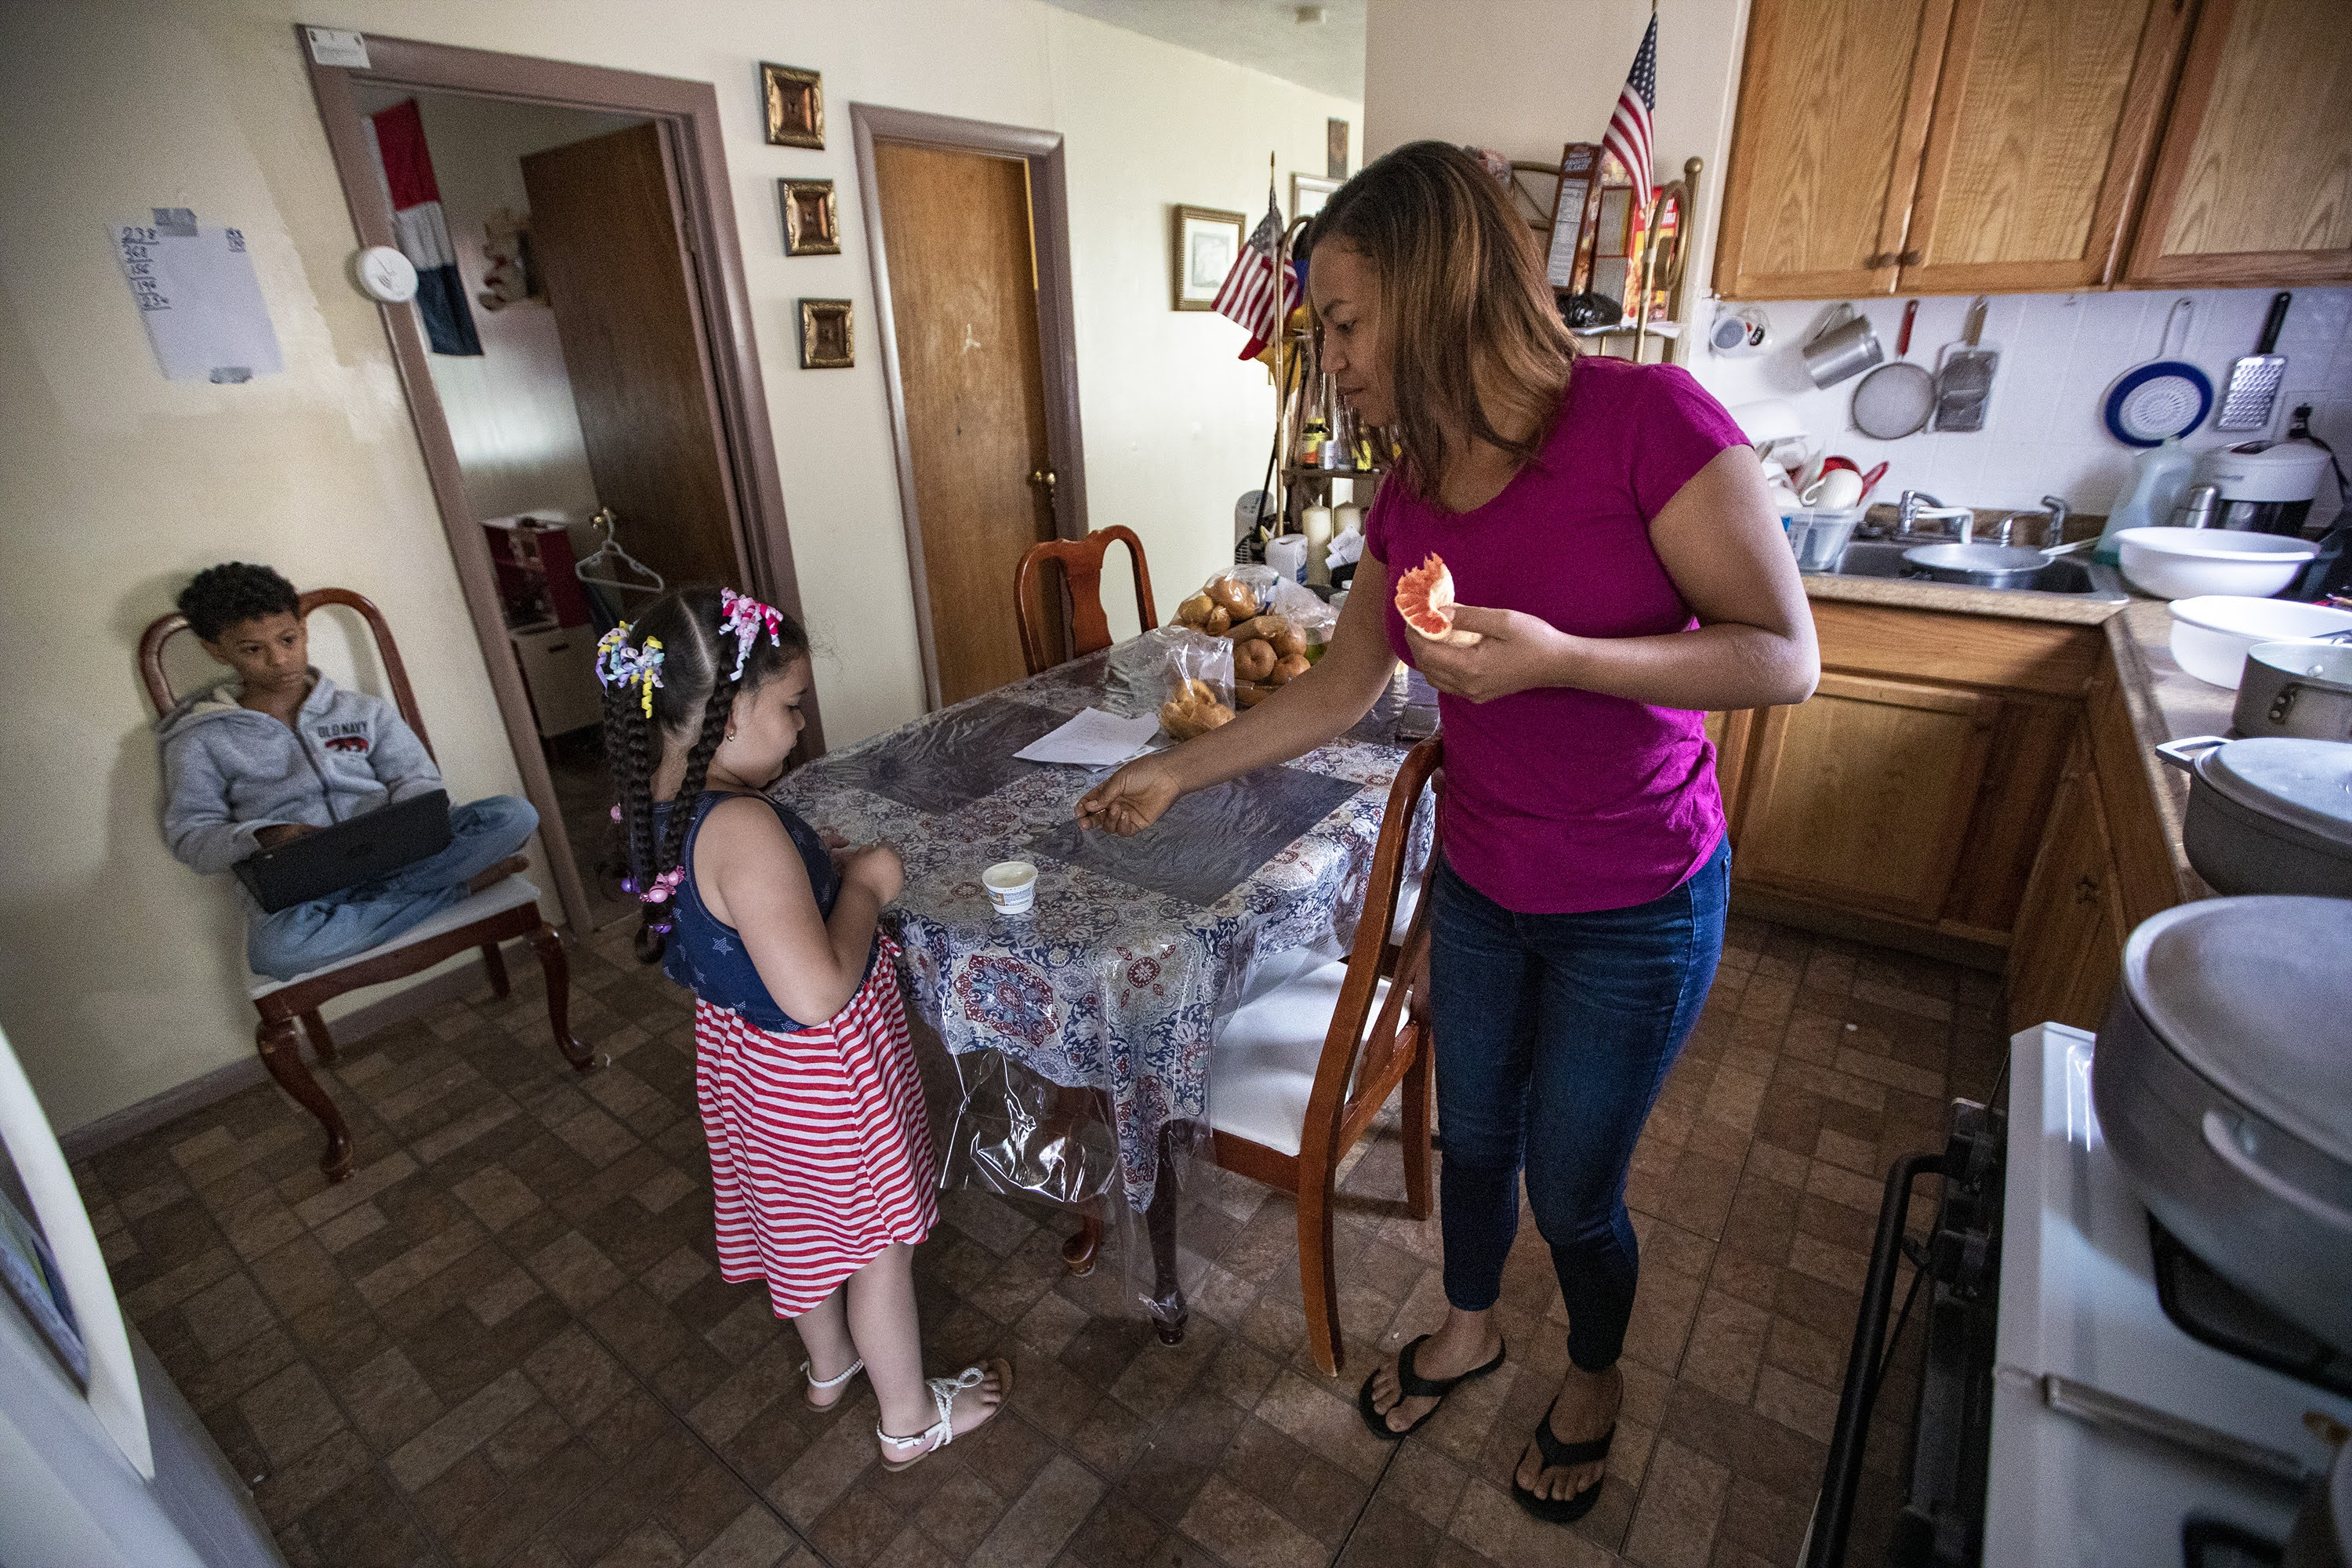 Margareth gives a spoon to Luz to eat her late morning yogurt snack, while Jesus sits on a chair using a laptop. (Jesse Costa/WBUR)